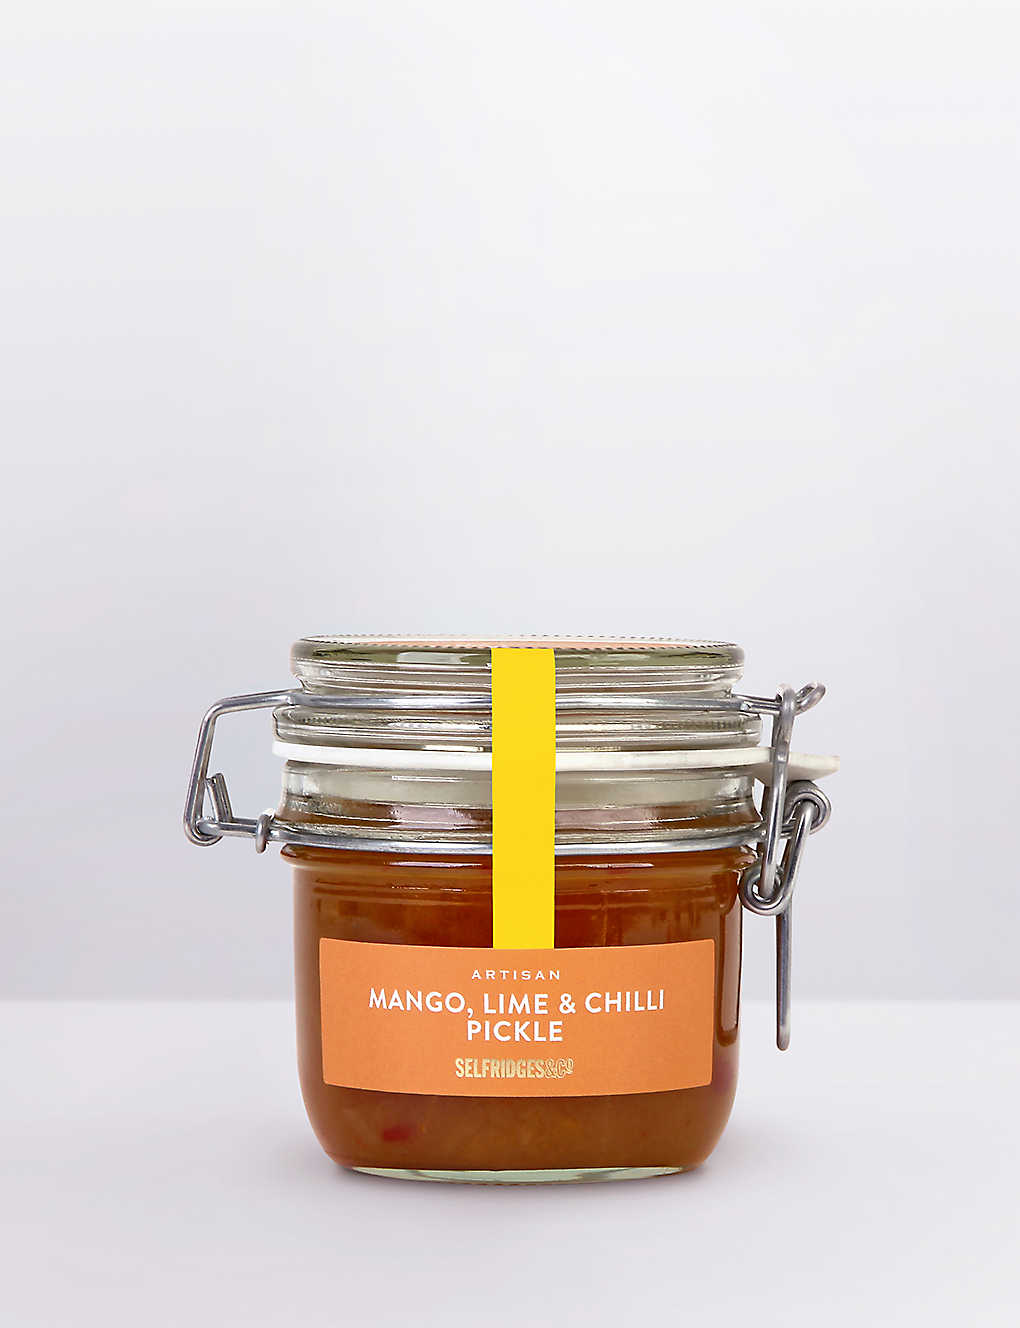 SELFRIDGES SELECTION: Artisan Mango Lime & Chilli pickle 240g